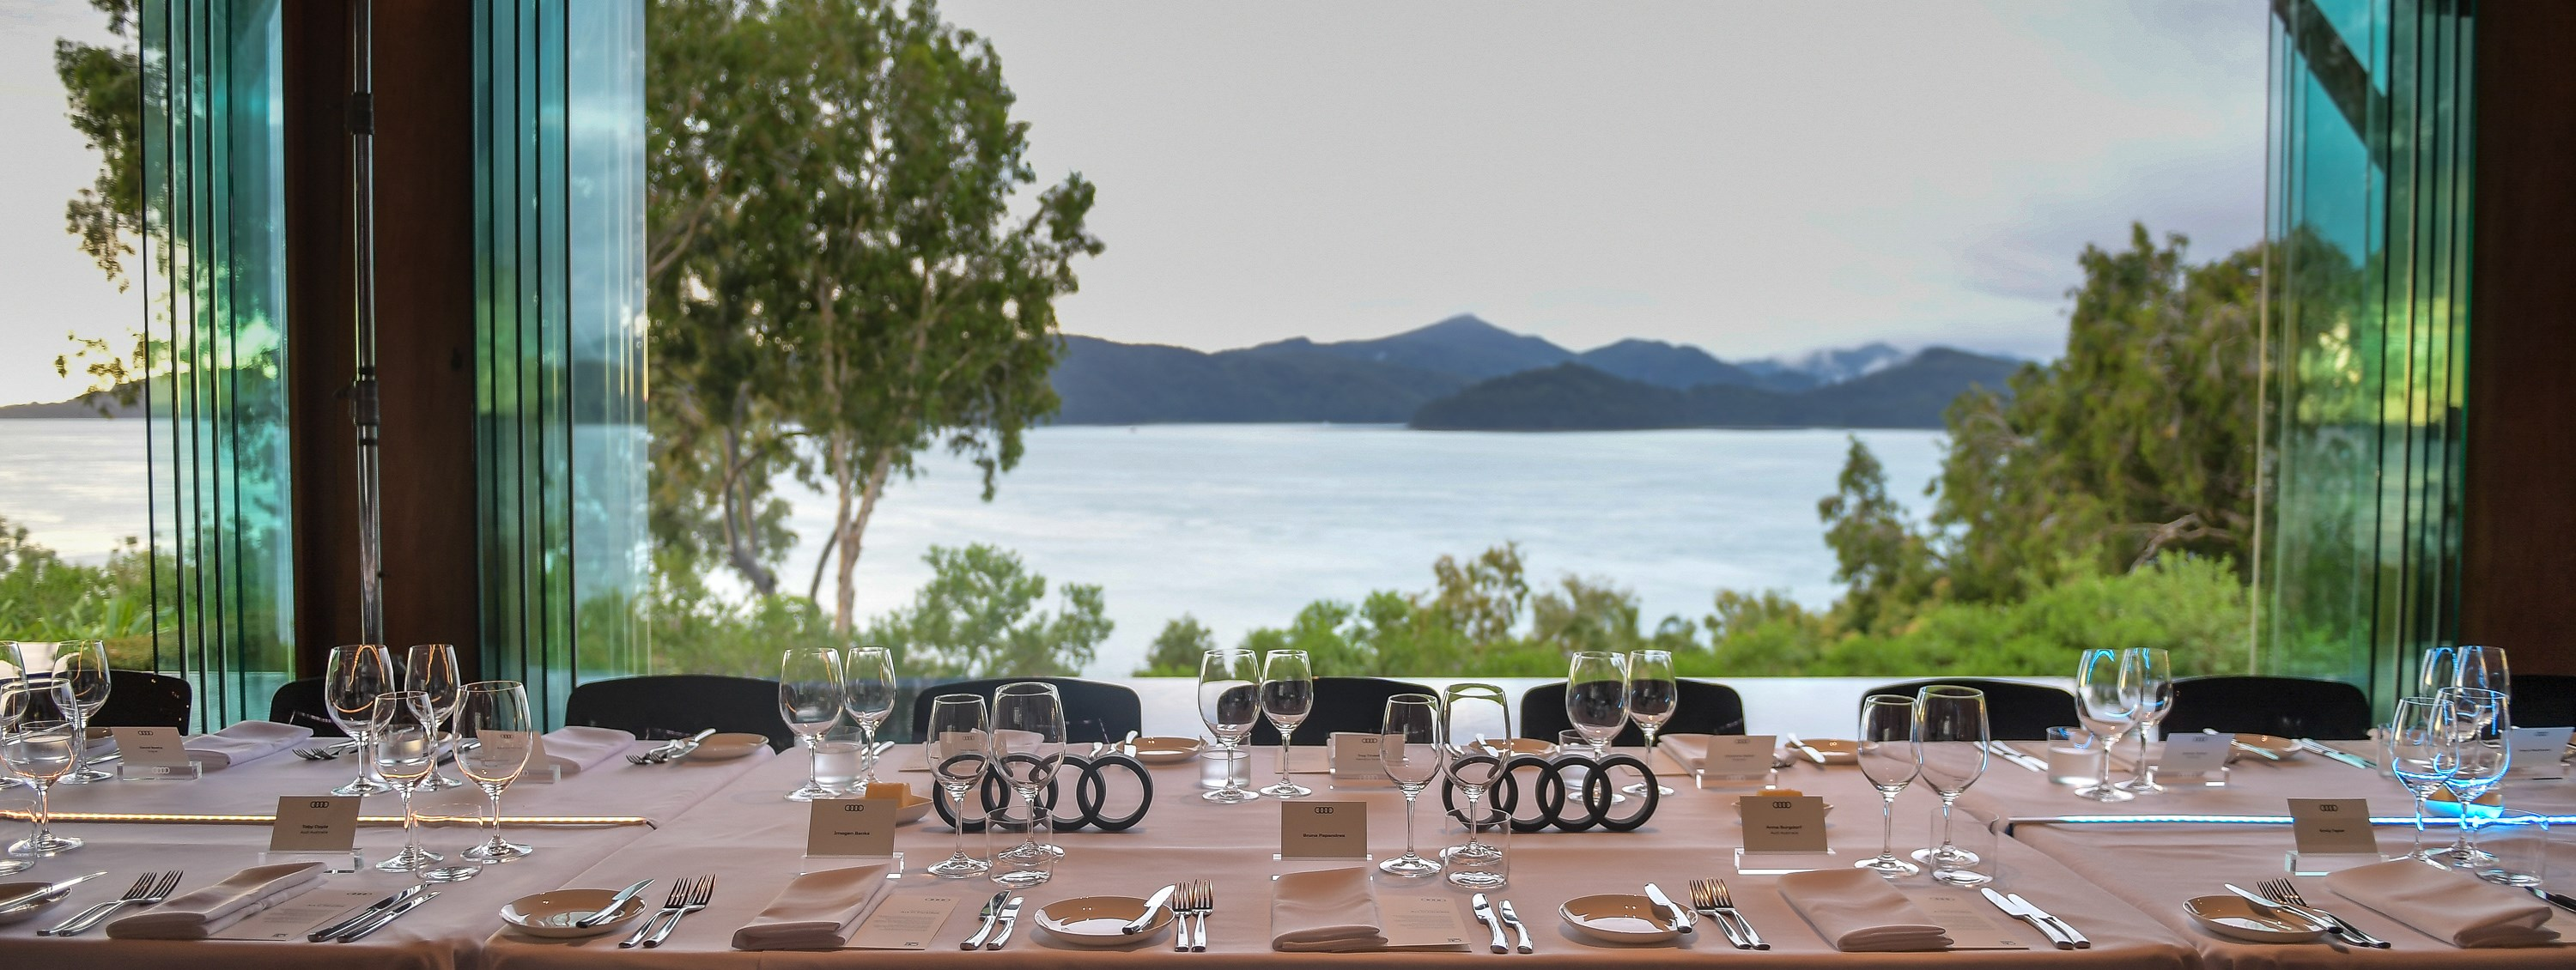 Dinner at qualia - Audi Hamilton Island Race Week 2016